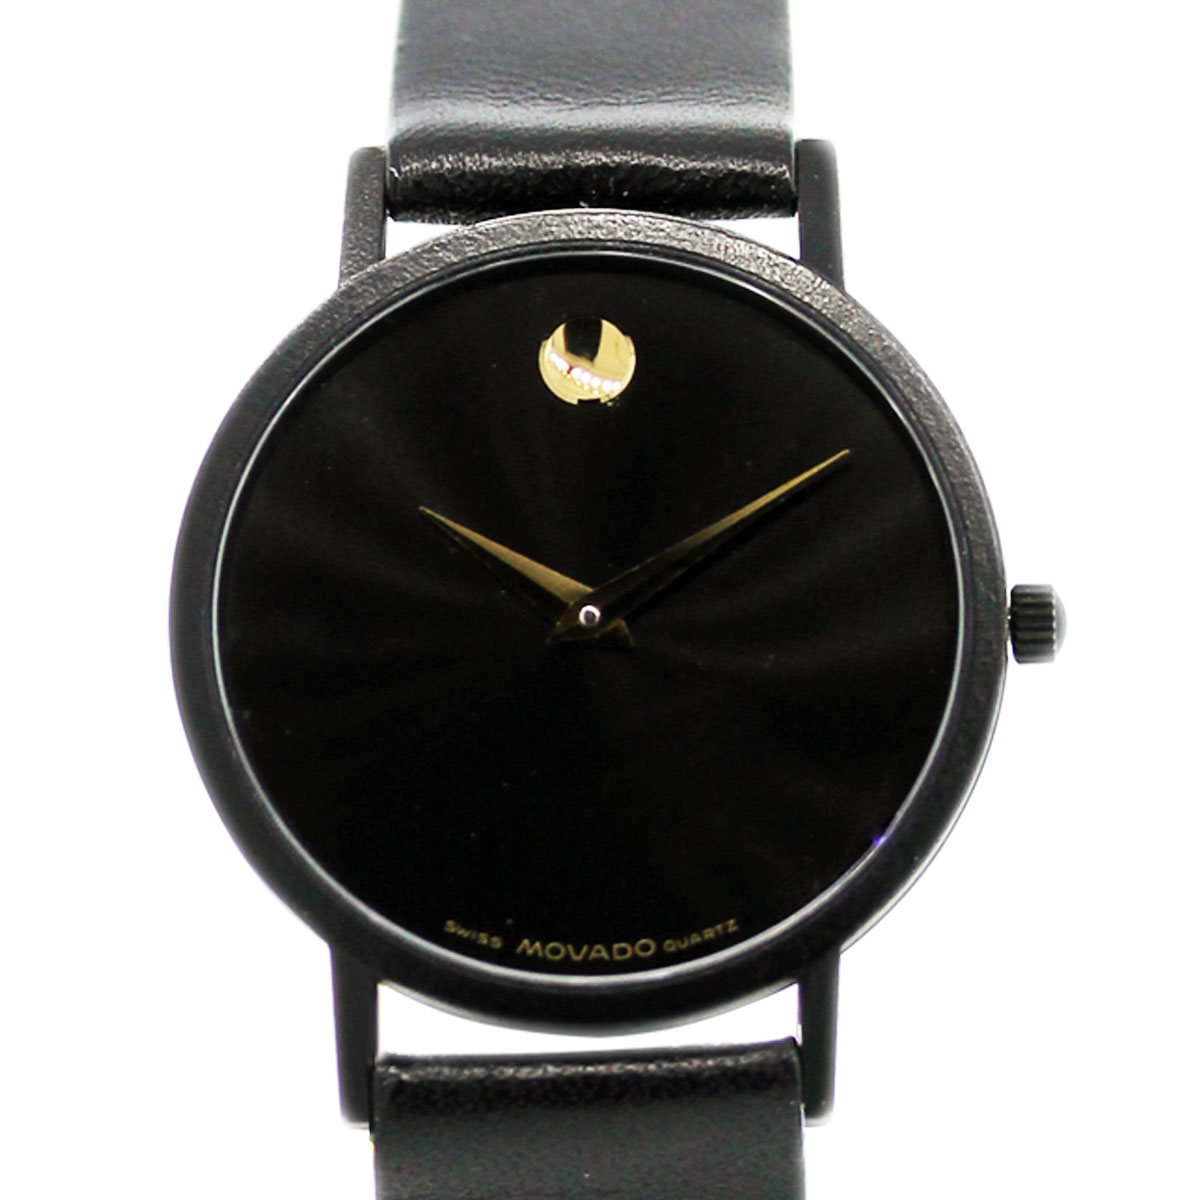 9e115d61a7c0 Movado Museum Watch on Black Leather Strap